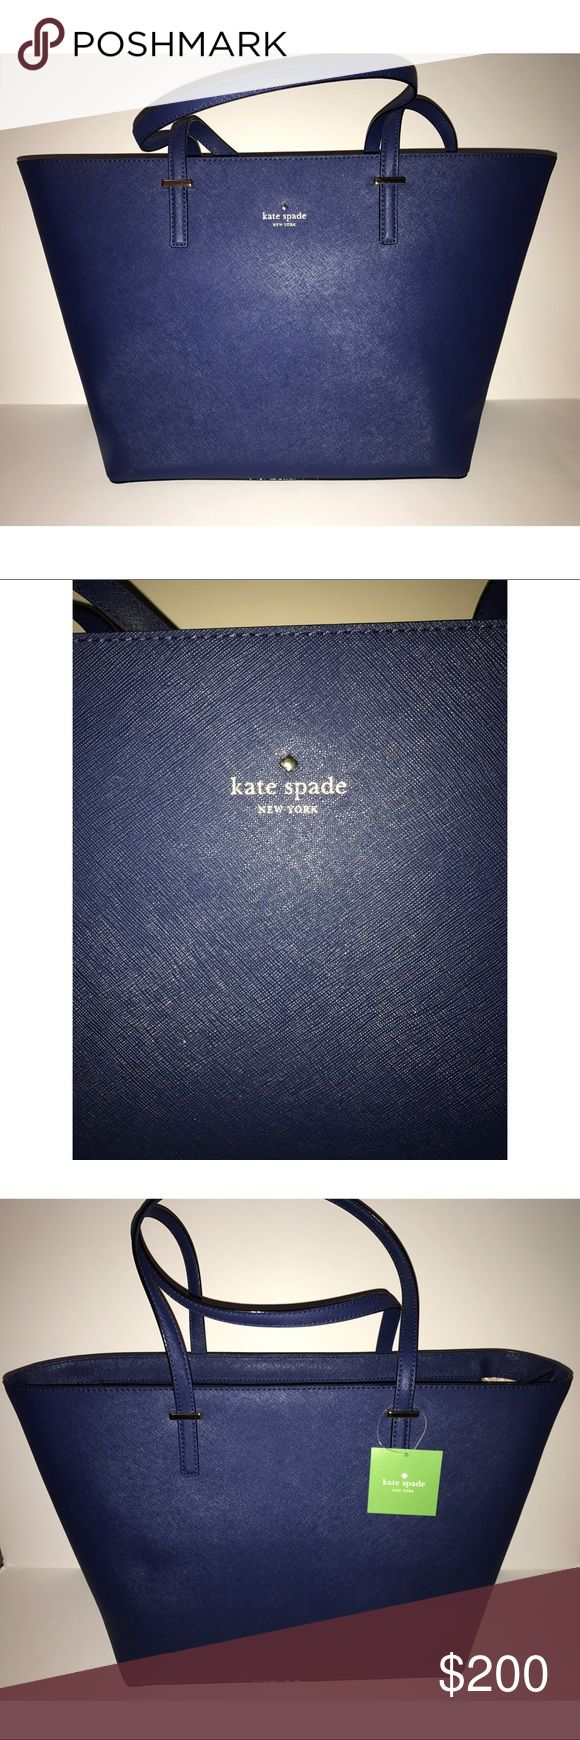 NWTS Kate Spade Blue Medium Cedar Street Harmony Company: Kate Spade  Color: Blue Brand new never used Comes with brown dust bag  Has a zipper on top to Secure your things  10% off Black Friday weekend sale till 11/25 kate spade Bags Totes